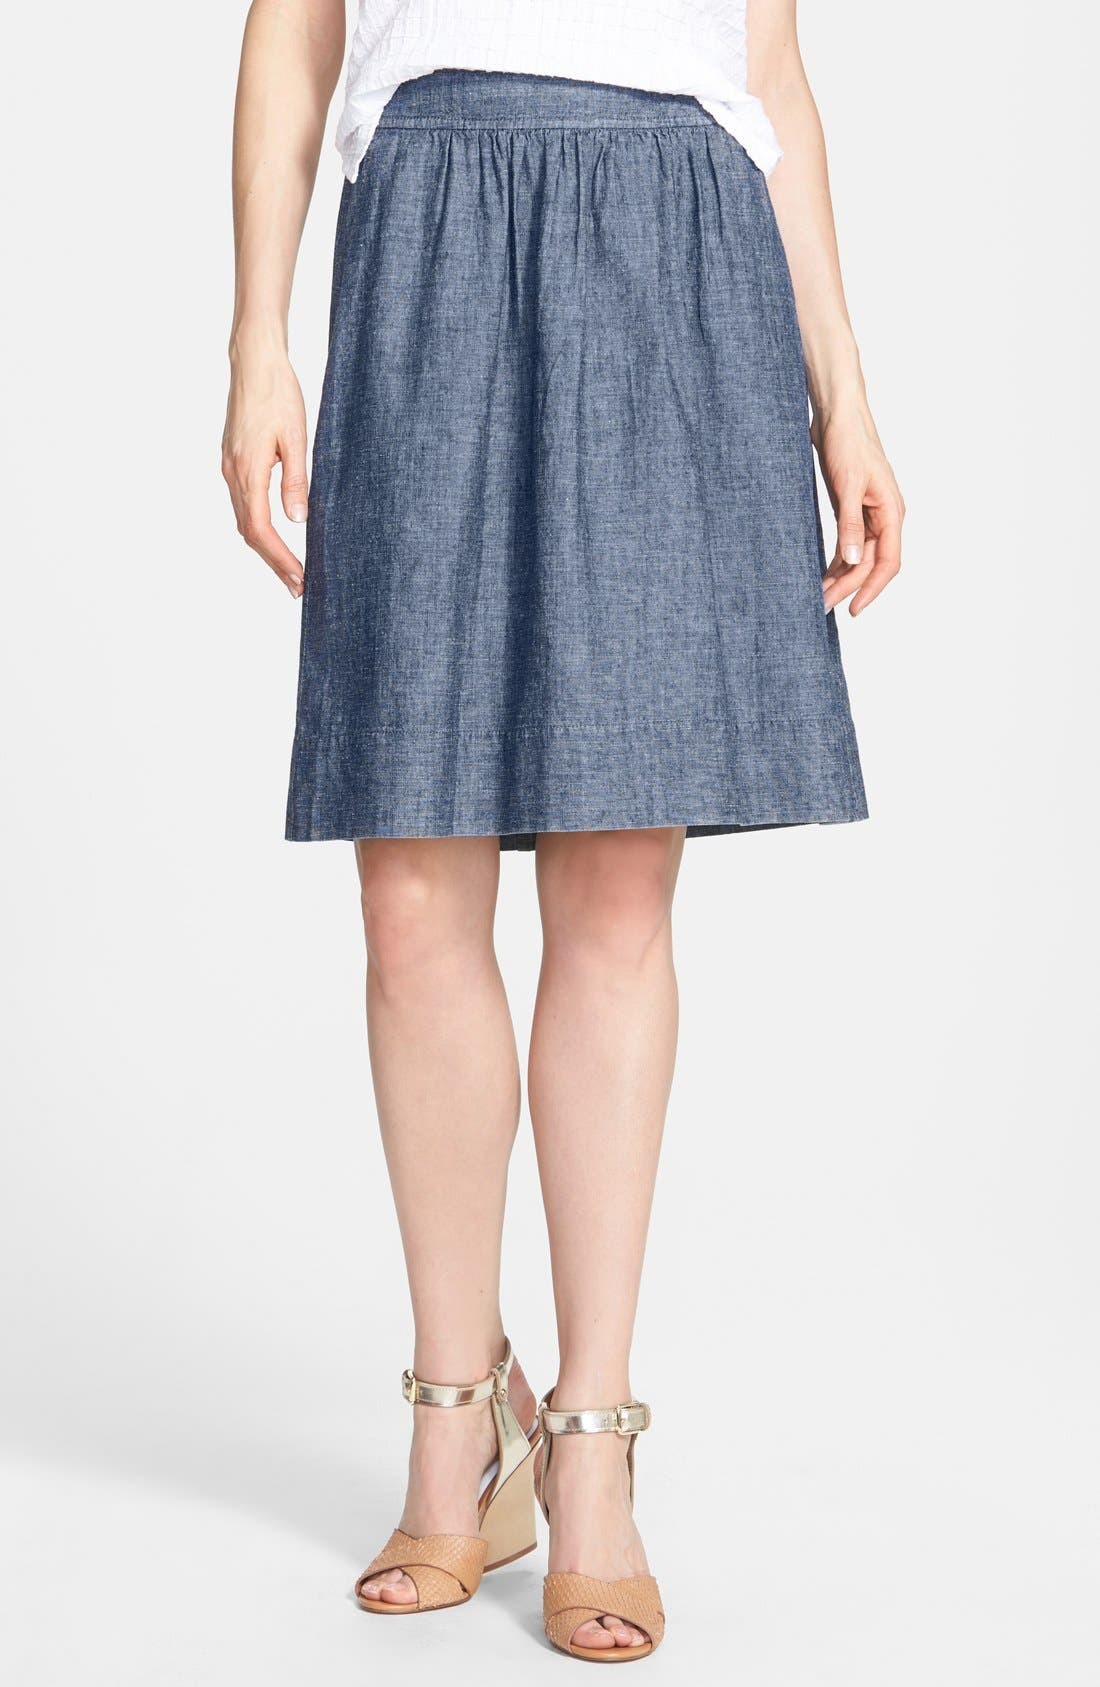 Alternate Image 1 Selected - Eileen Fisher Hemp & Organic Cotton A-Line Skirt (Regular & Petite)